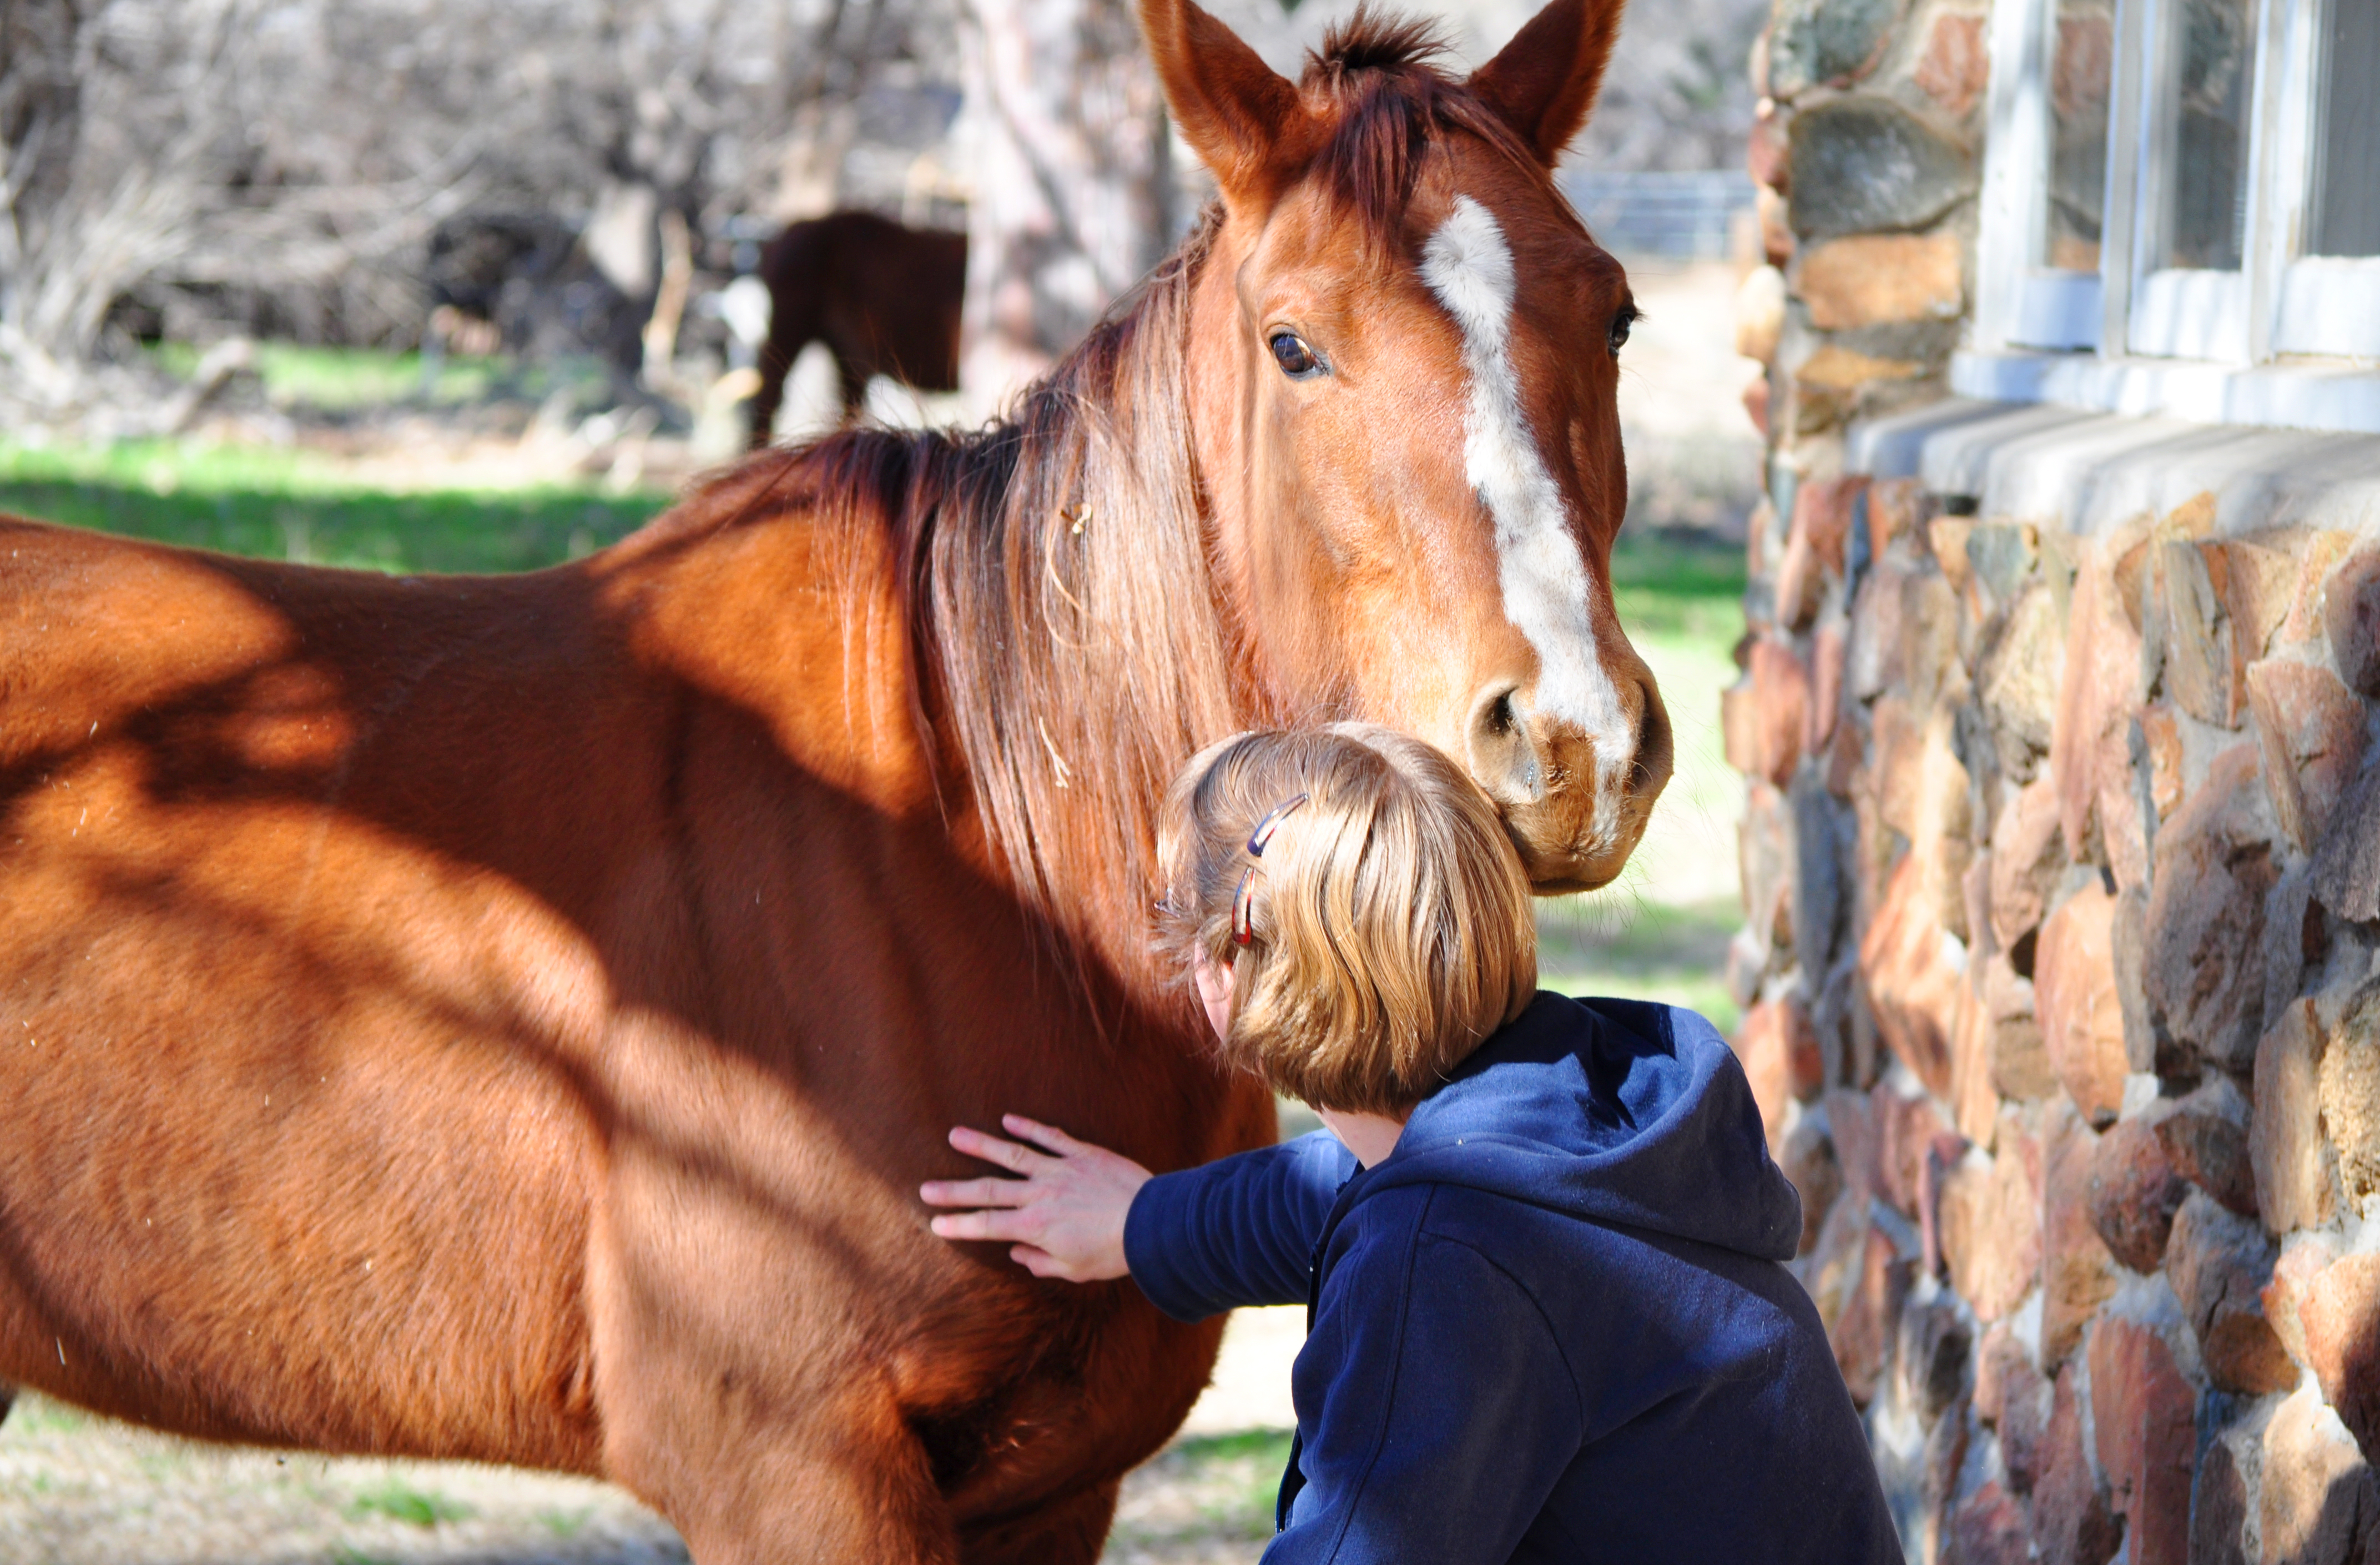 Equine_Student_Petting_Horse